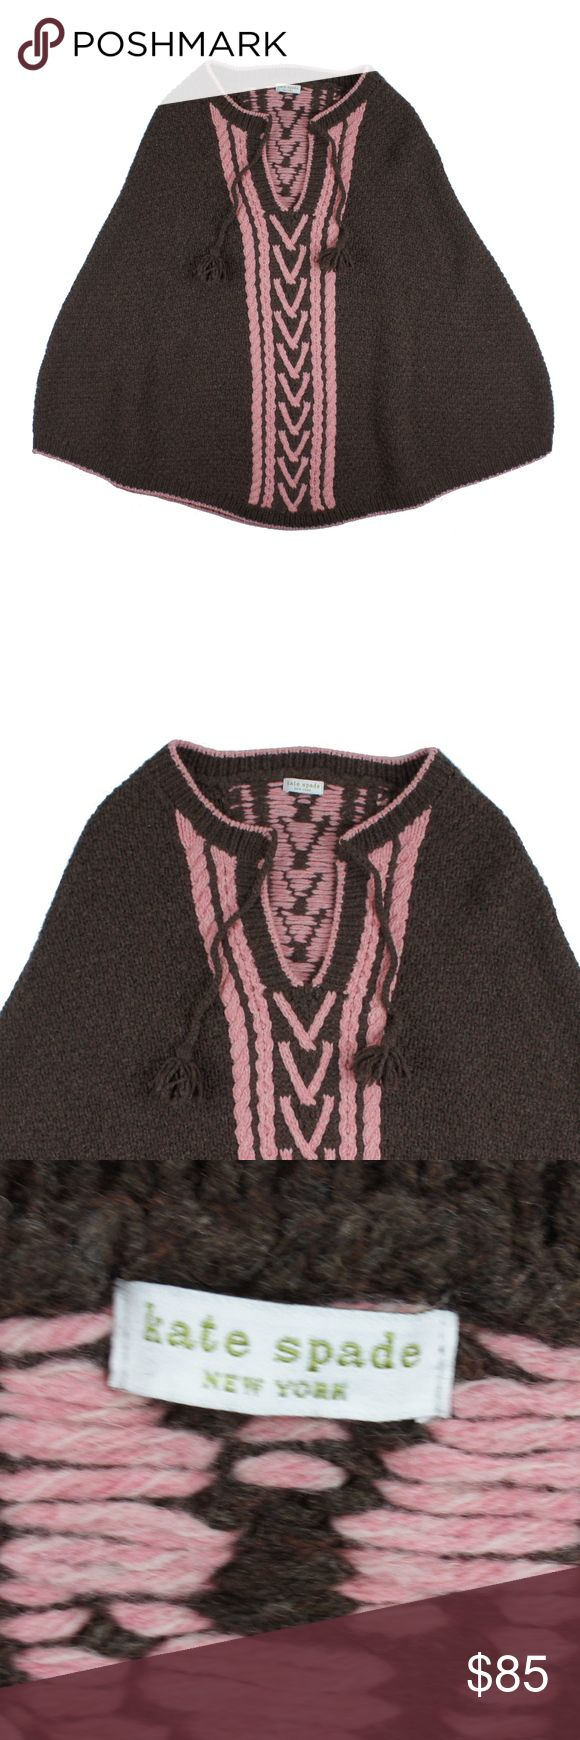 """KATE SPADE Brown Pink Wool Boho Poncho Sweater Size - M  This brown and pink boho poncho sweater from KATE SPADE is in excellent condition. It features a pullover style (no arm slits) and a tie at the neckline. Made of 100% Wool.   Measures: Total length: 28"""" kate spade Sweaters Shrugs & Ponchos"""